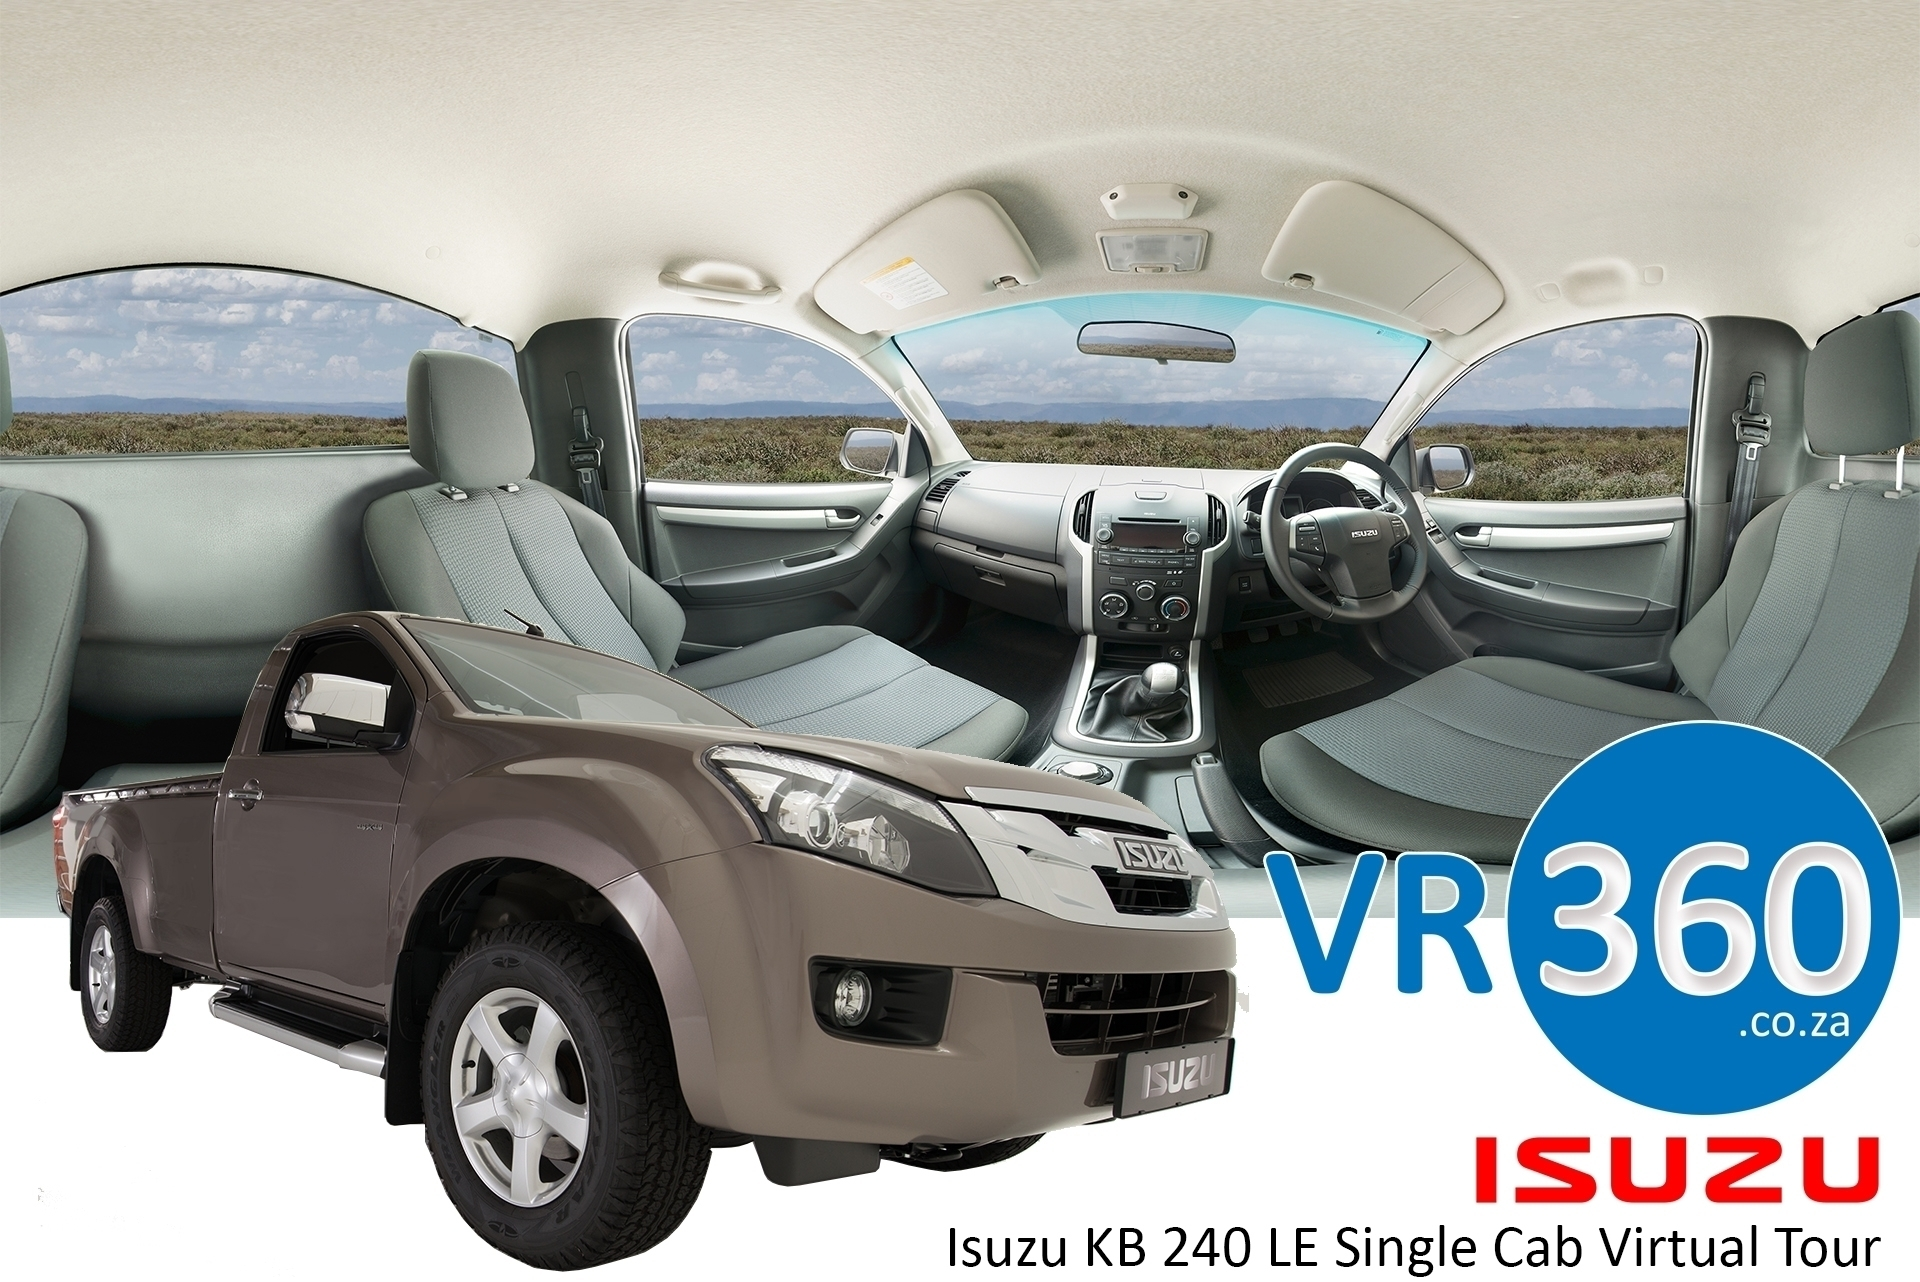 isuzu-KB-240-LE-single-cab--virtual-tour